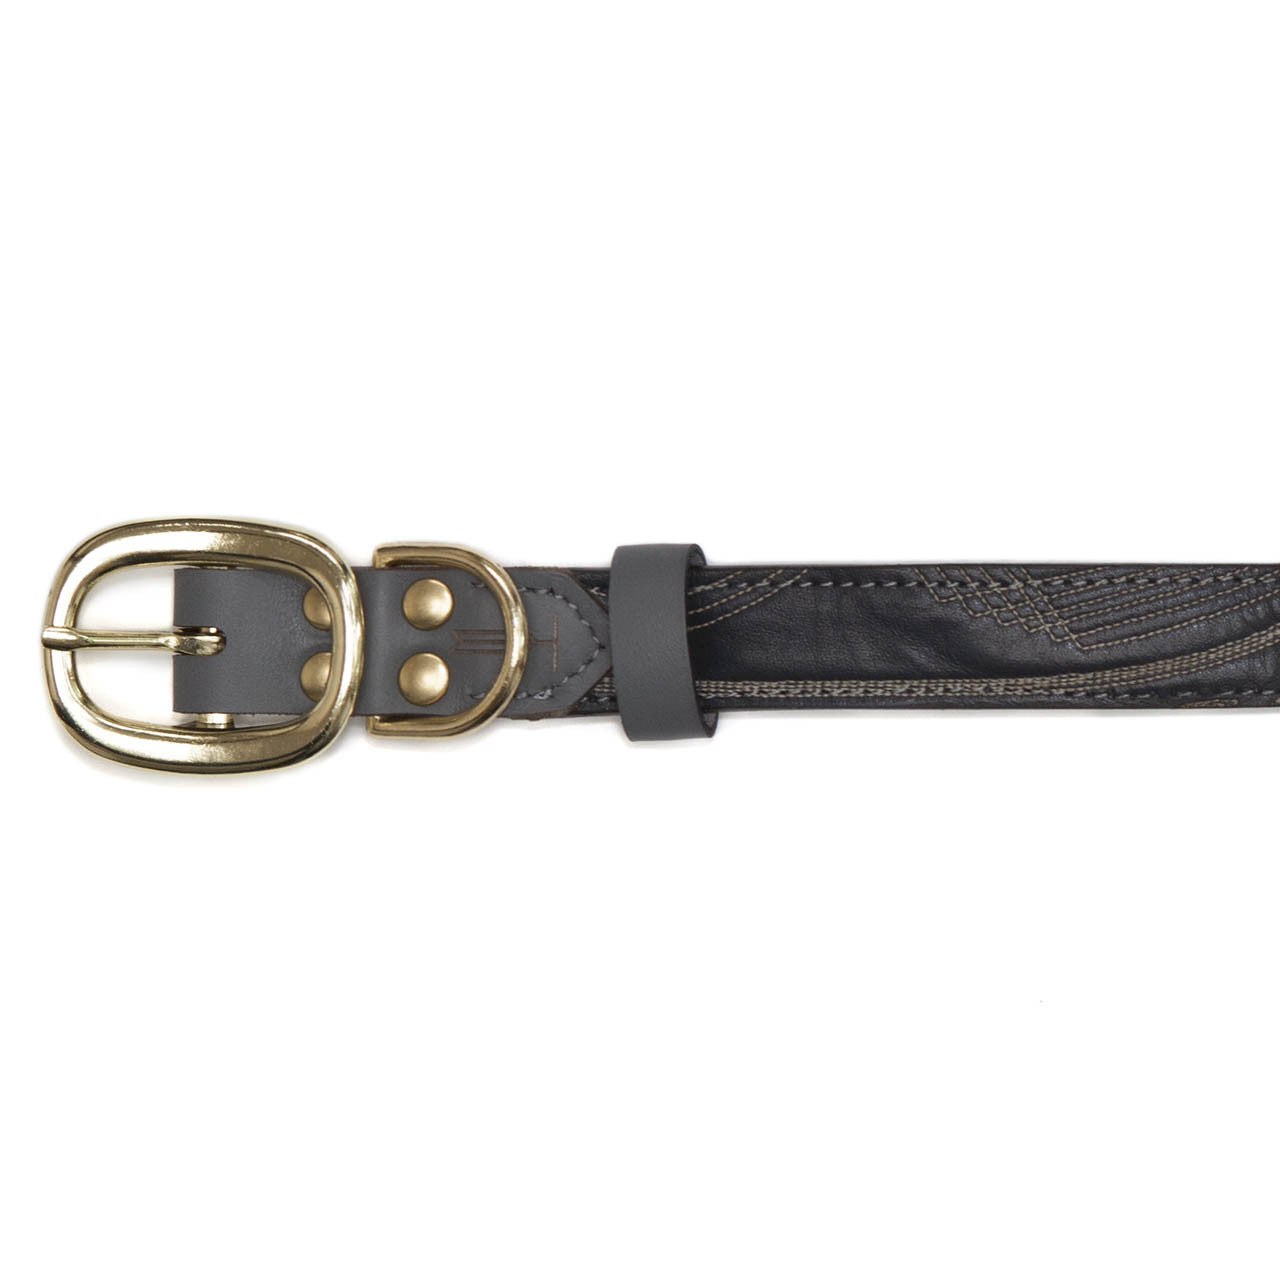 Gray Dog Collar with Navy Leather + Tan/White Stitching (buckle)